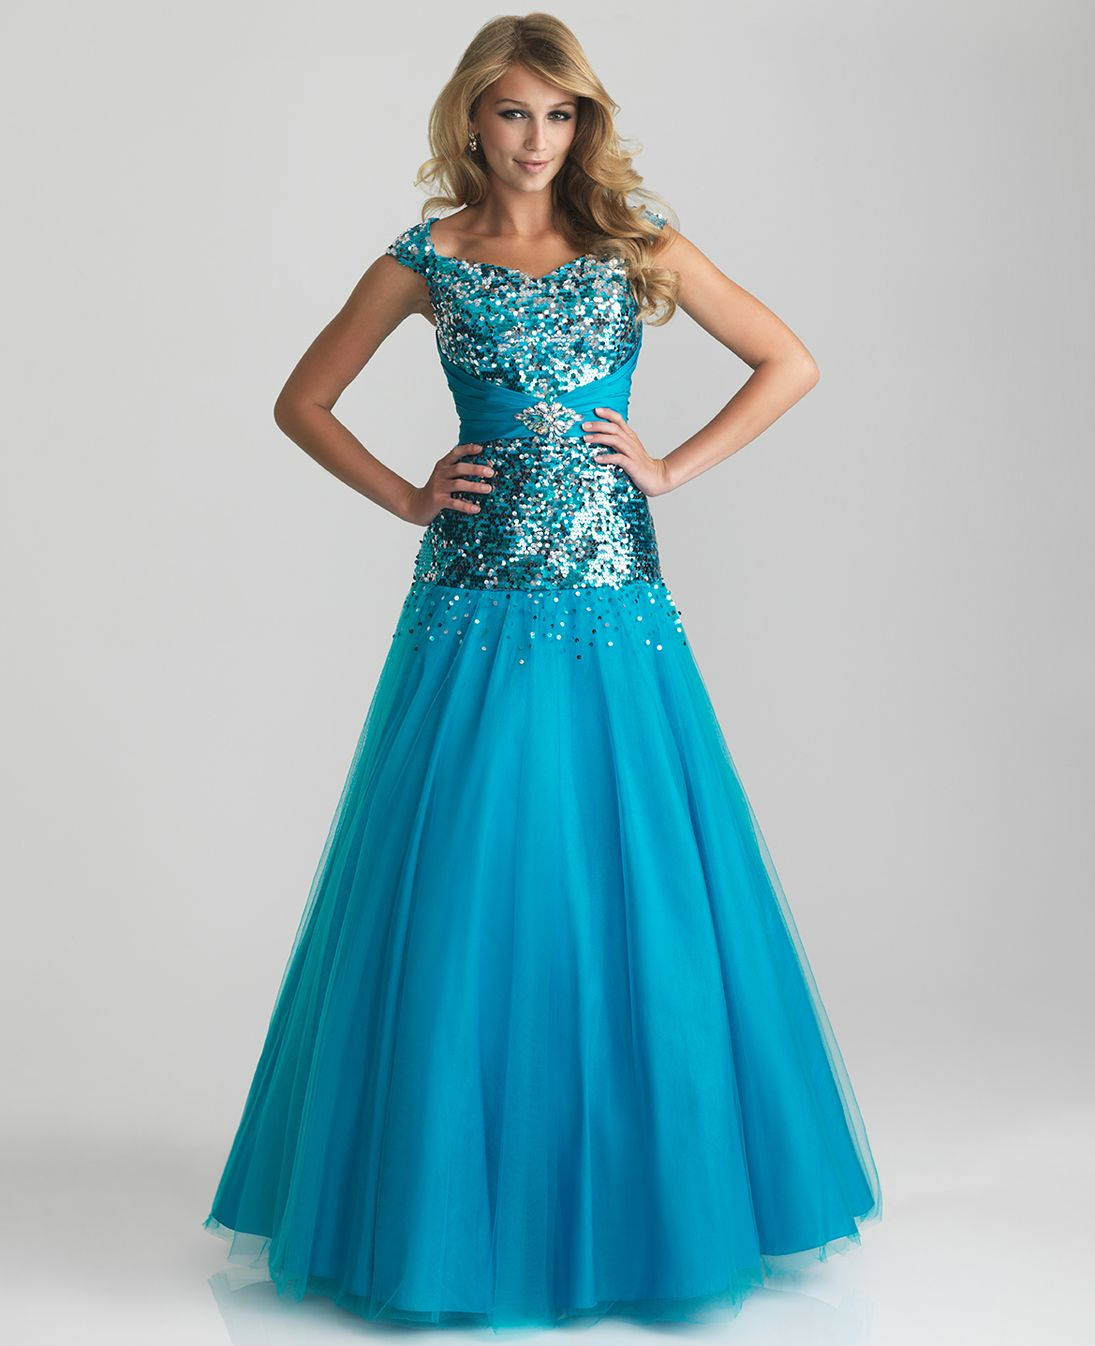 78  images about Prom dresses on Pinterest  Yellow roses Sleeve ...